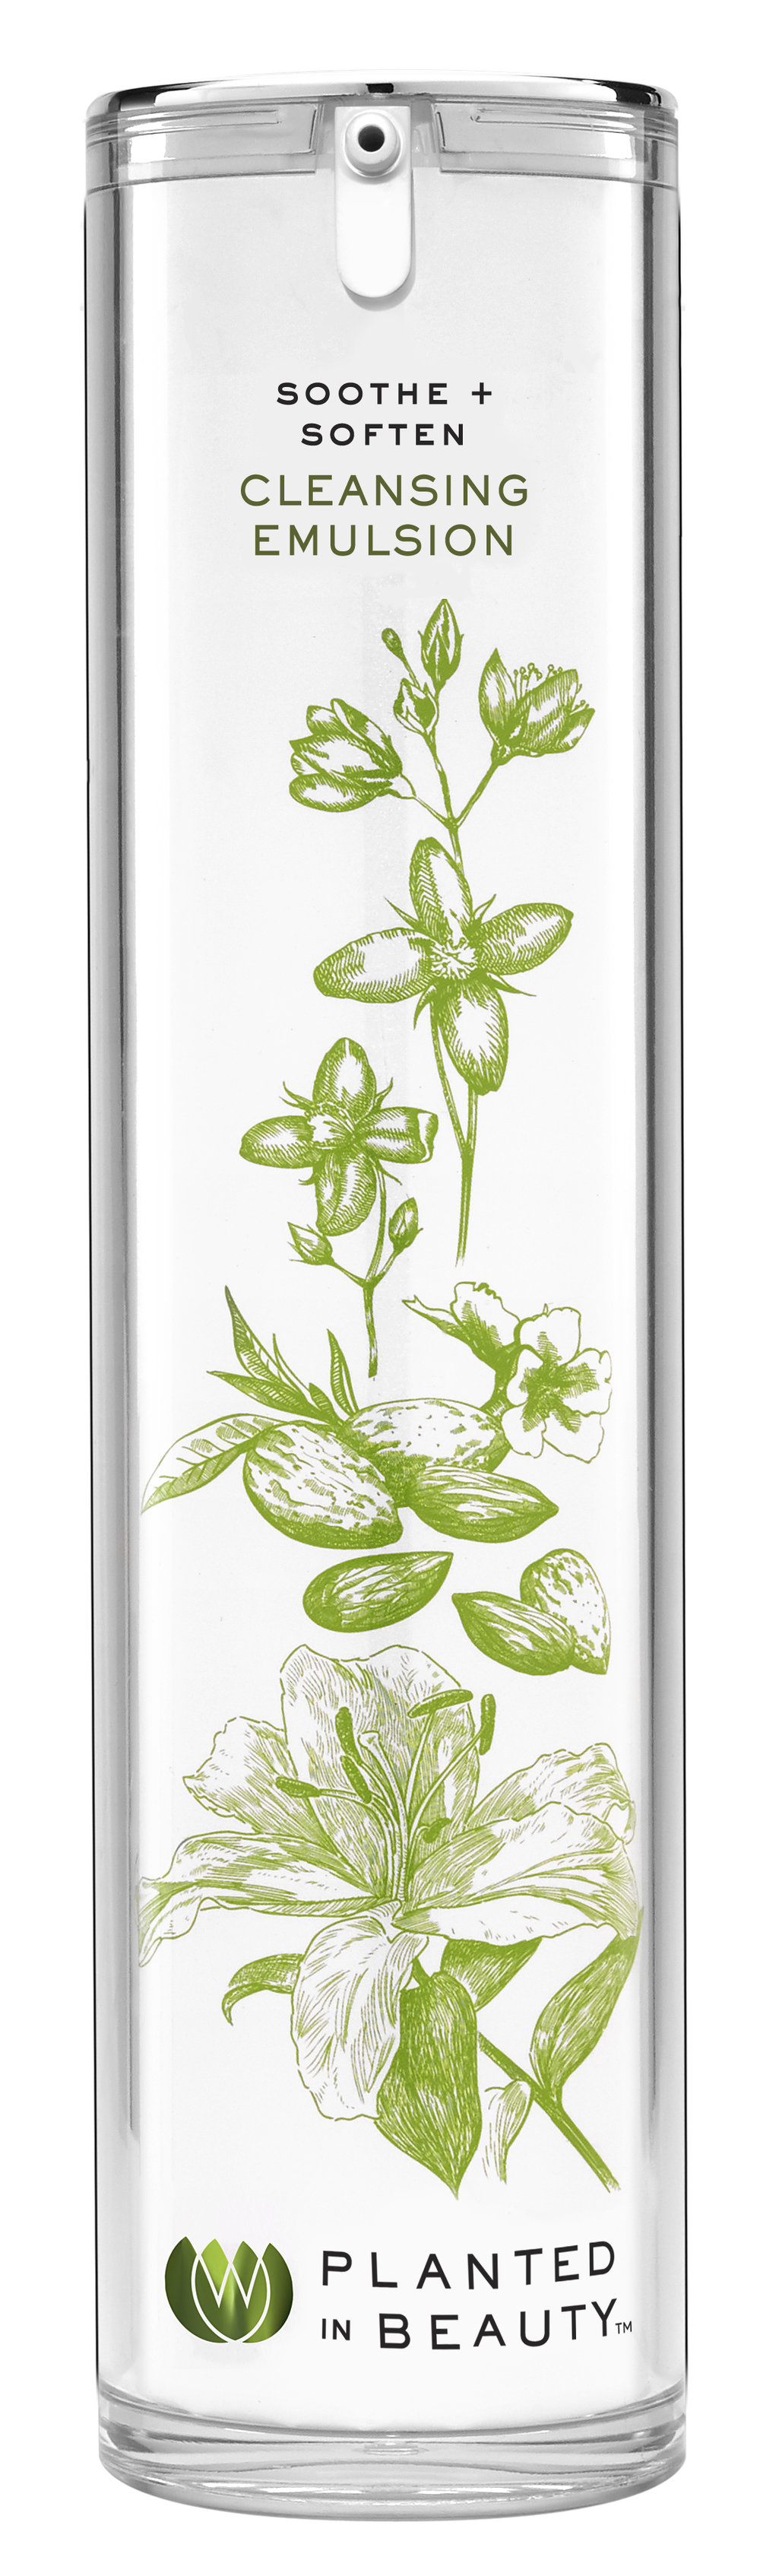 PLANTED IN BEAUTY_Soothe + Soften Cleansing Emulsion_white backdrop.jpg